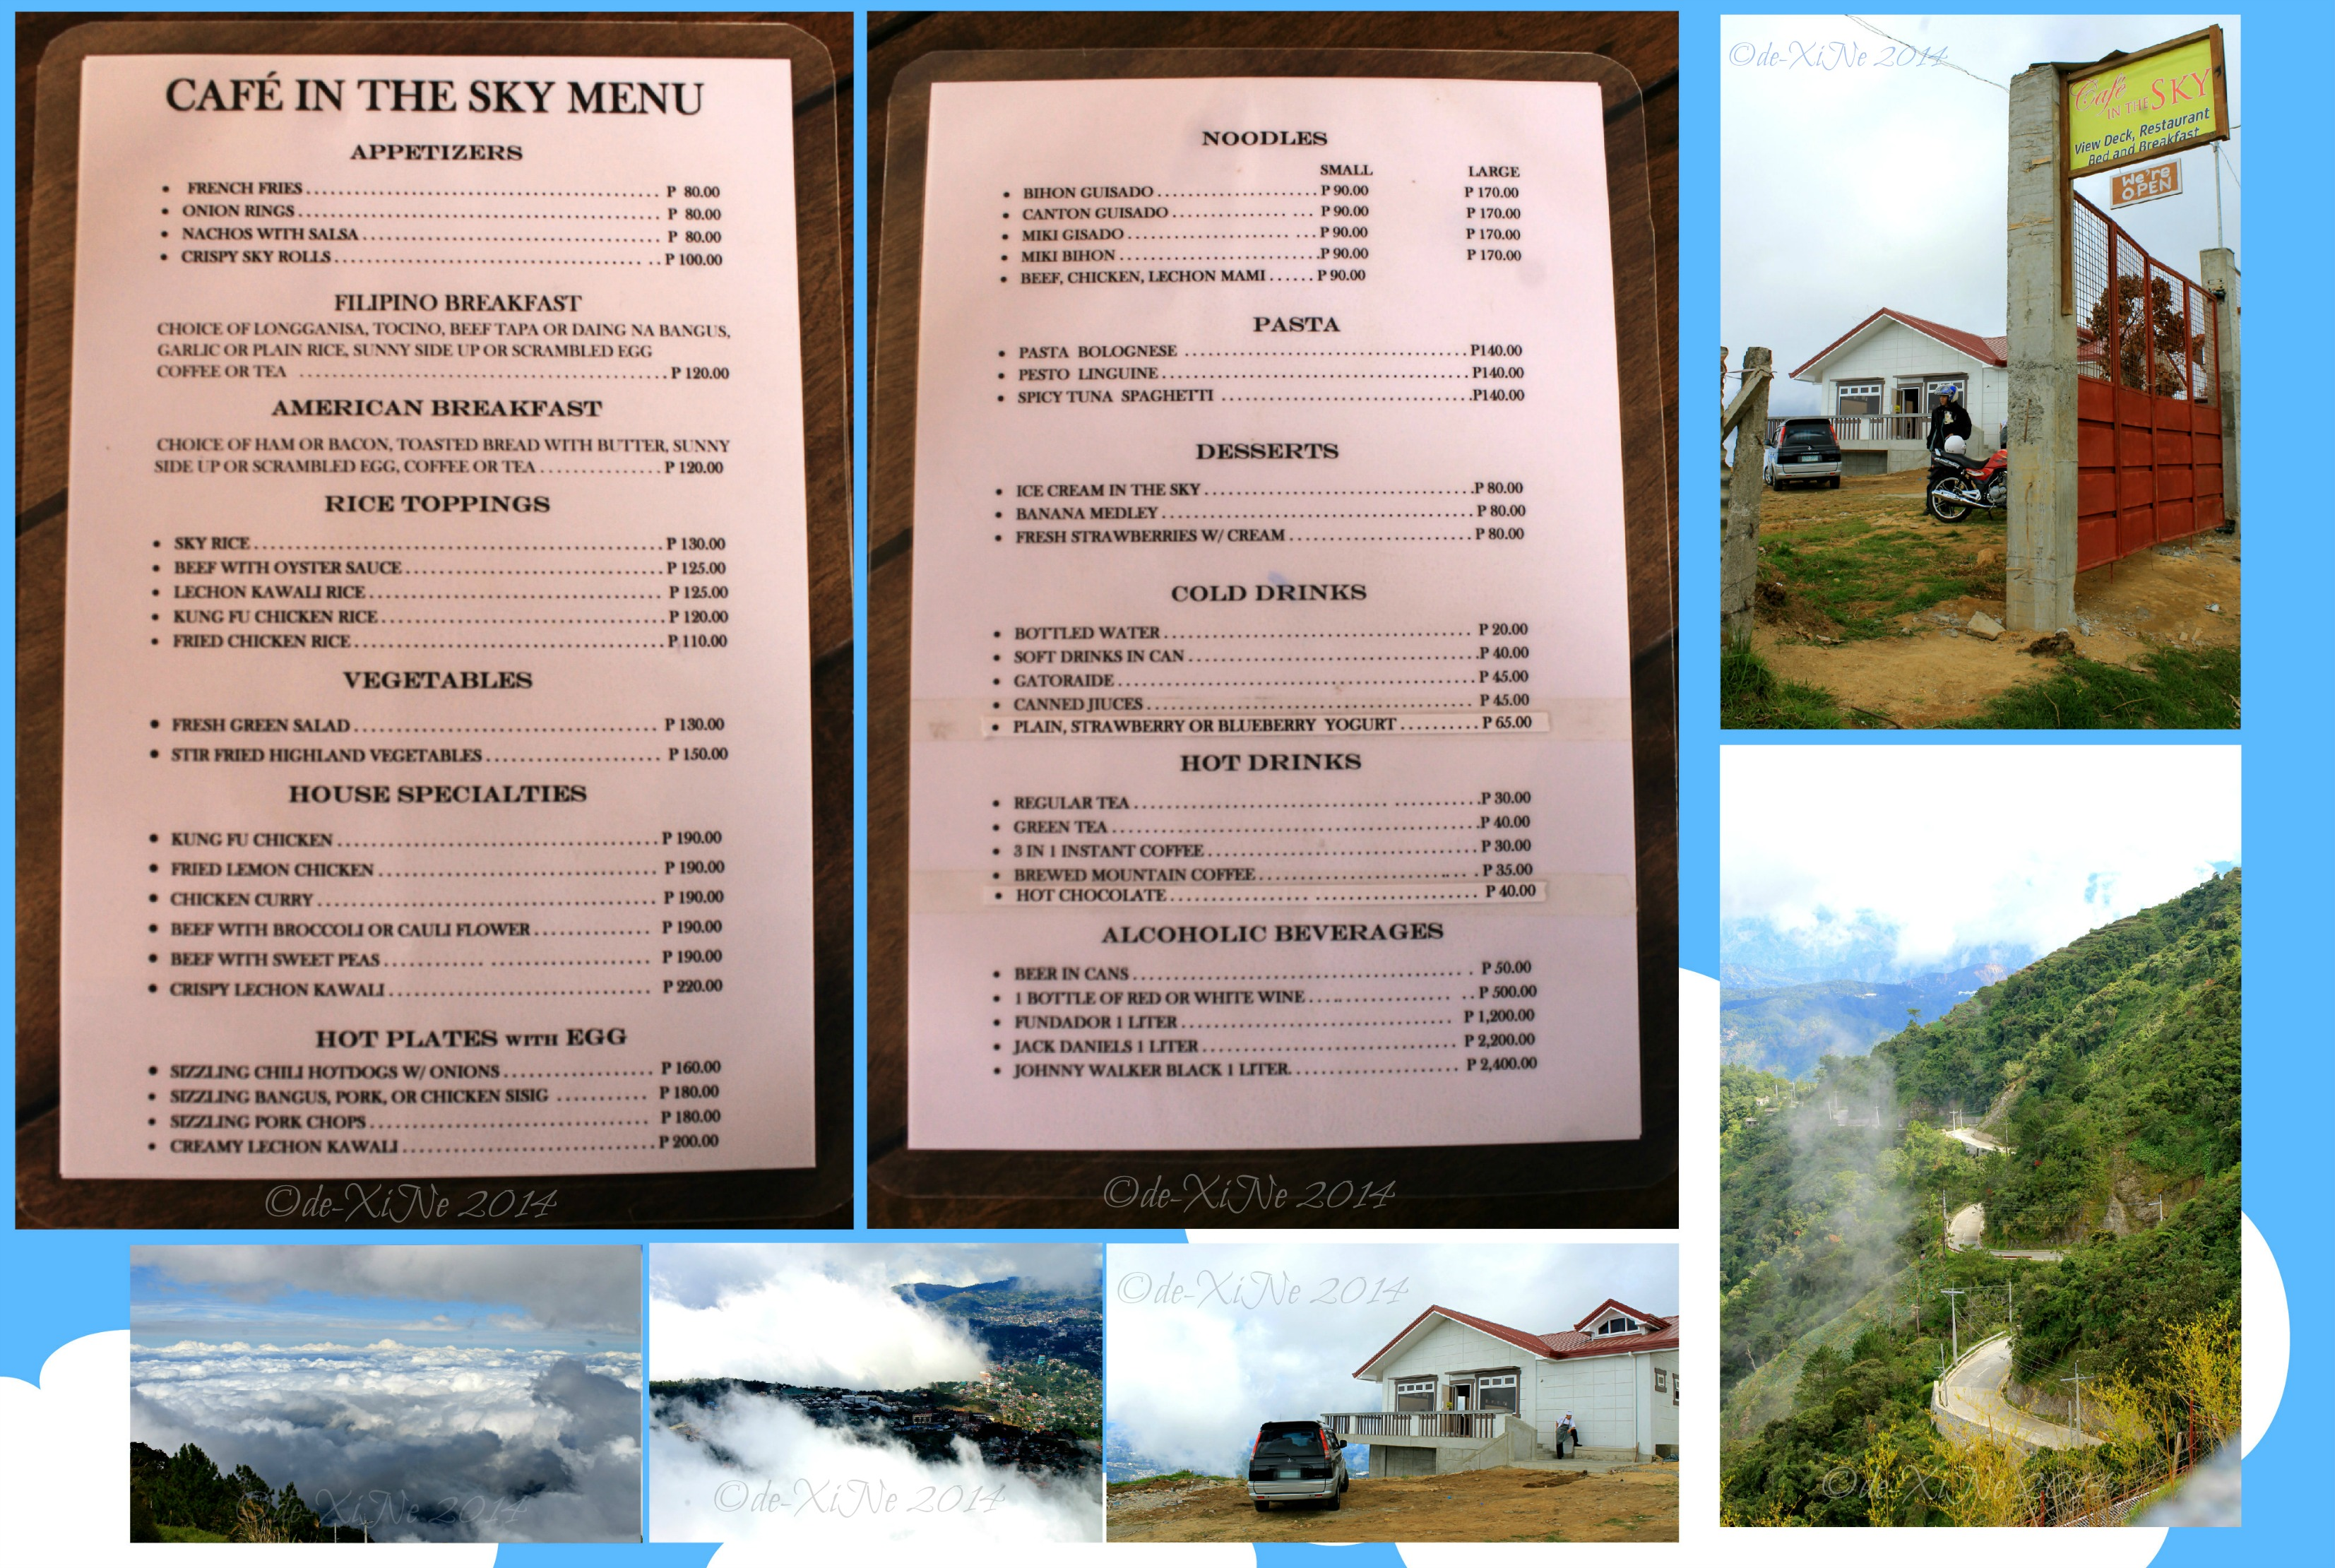 Destination Chow Mt Santo Tomas Cafe in the Sky and Baguio Dairy Farm